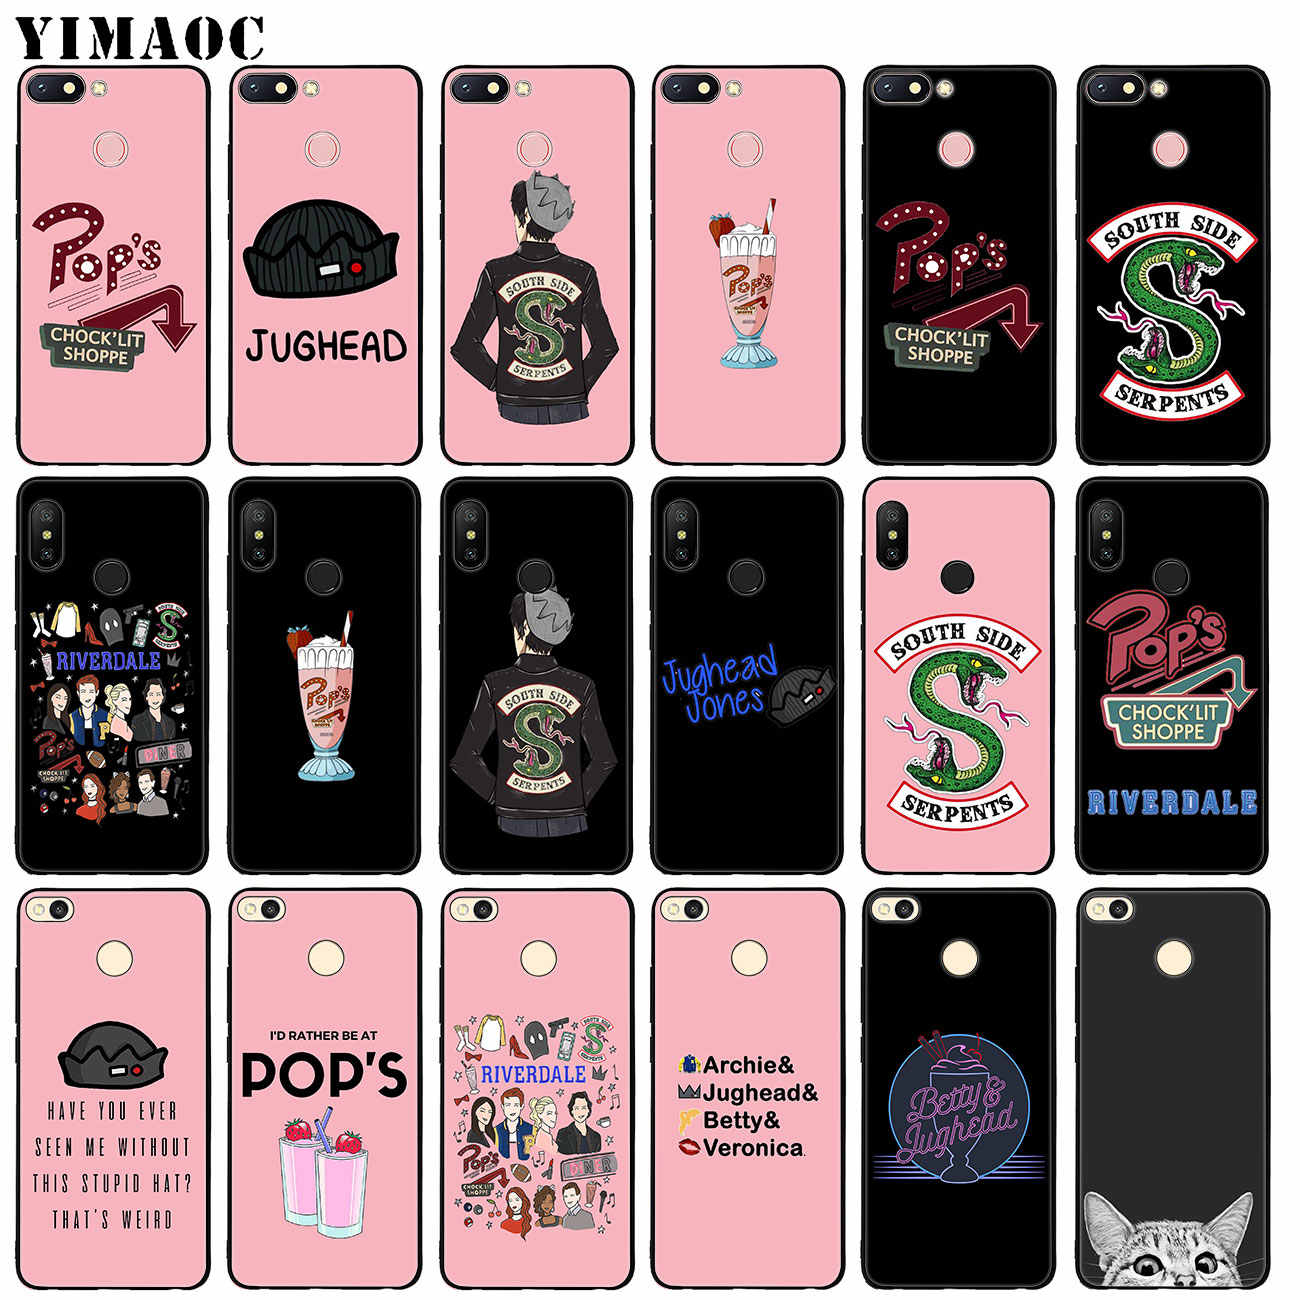 YIMAOC Riverdale TV South Side Serpents Soft Silicone Phone Case for Xiaomi Redmi K20 Pro 6A 5A 7A Note 7 5 6 Pro Mi Cover